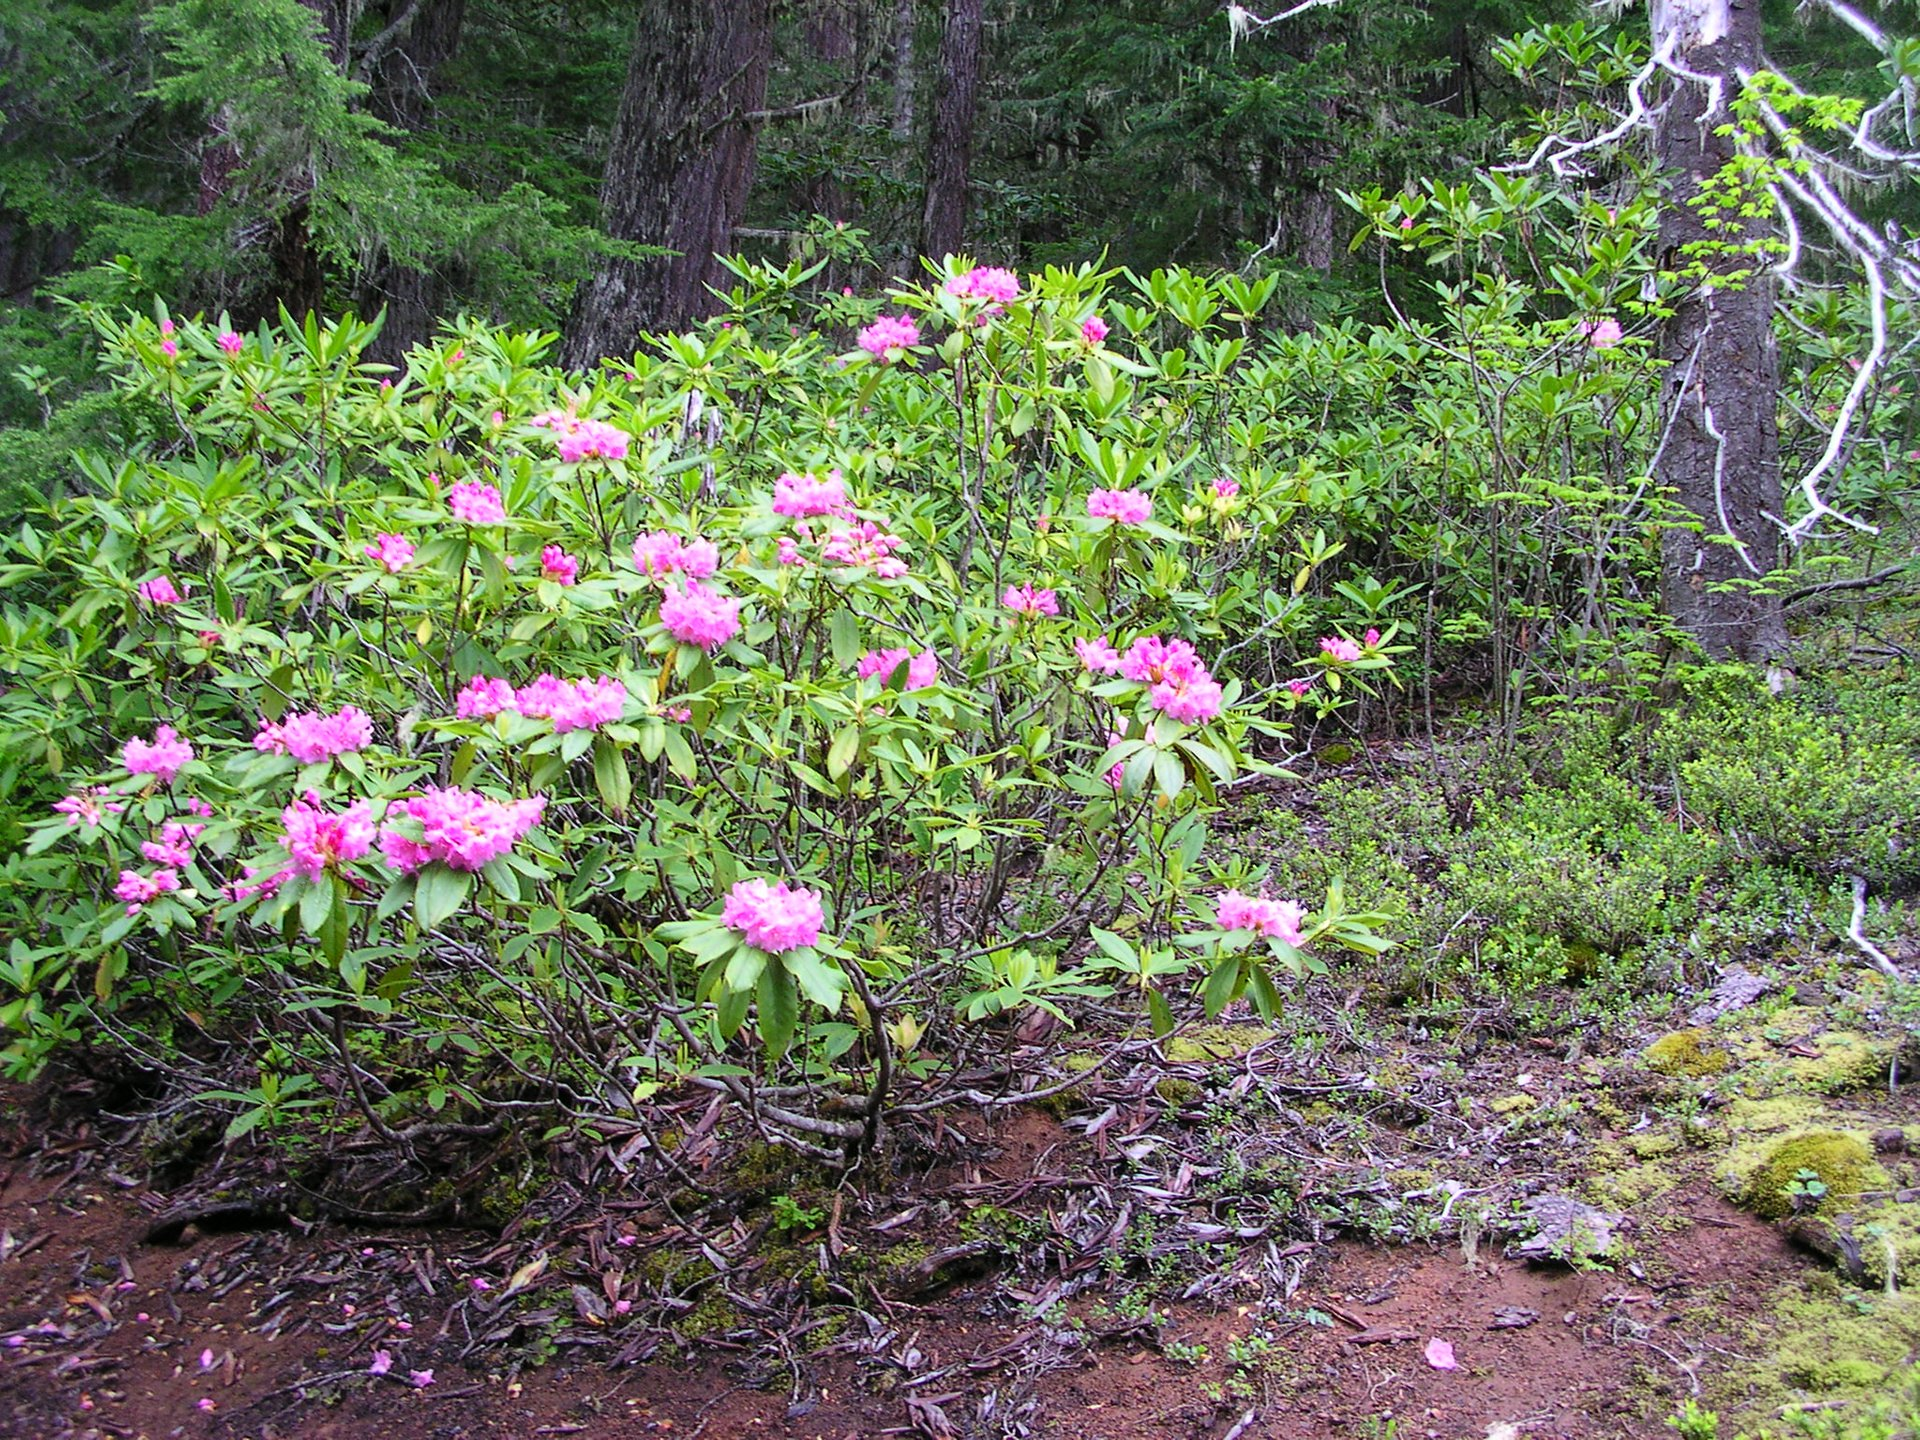 Pacific Rhododendron in Washington 2020 - Best Time